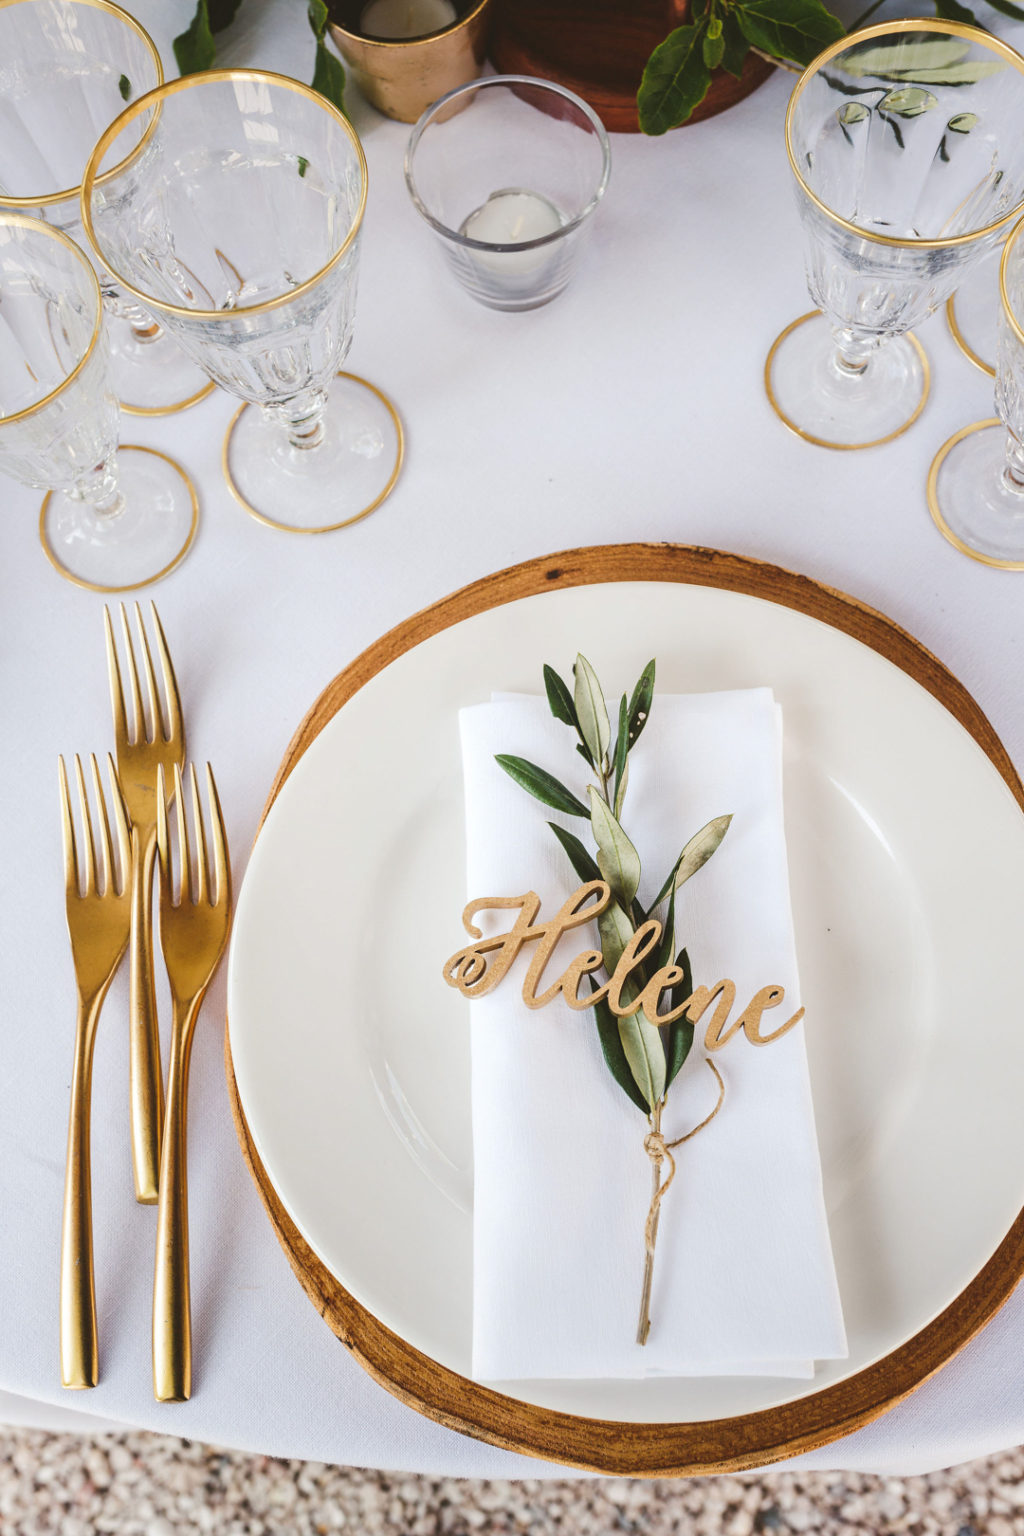 Gold cutlery, gold rim glasses and wooden chargers finished off the look